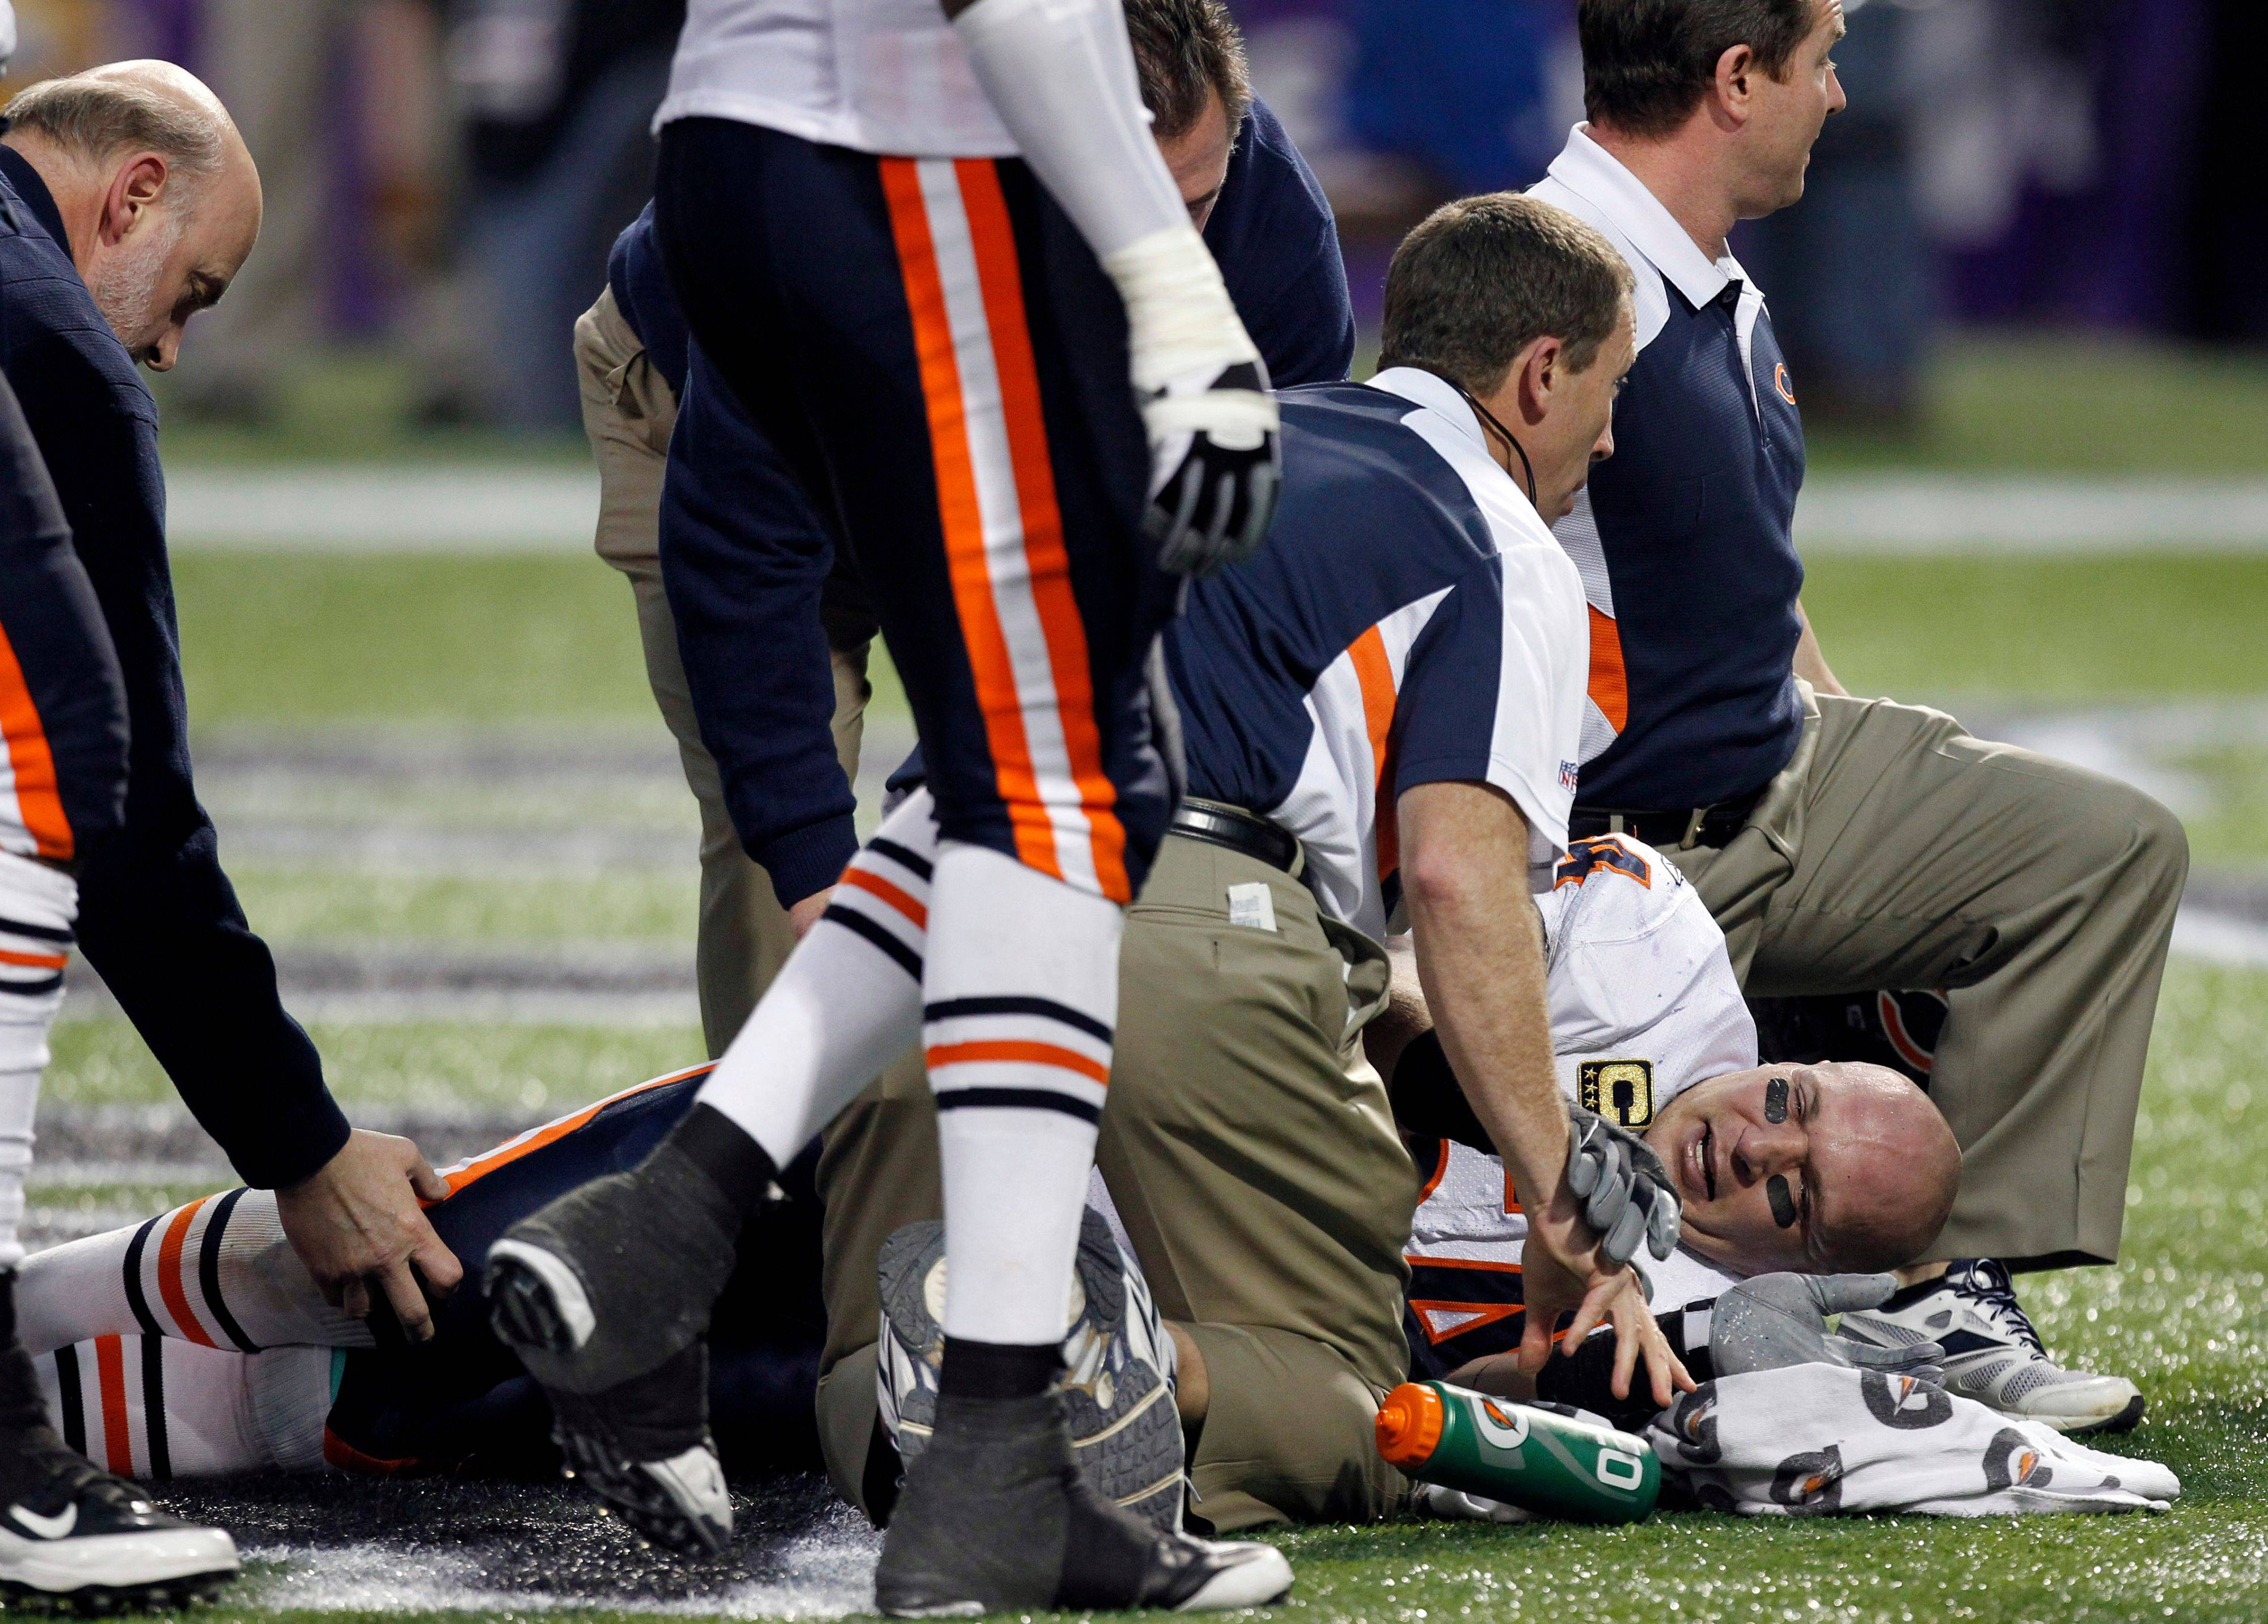 Chicago Bears middle linebacker Brian Urlacher is checked after getting injured during the second half. Urlacher was able to walk off the field without assistance.